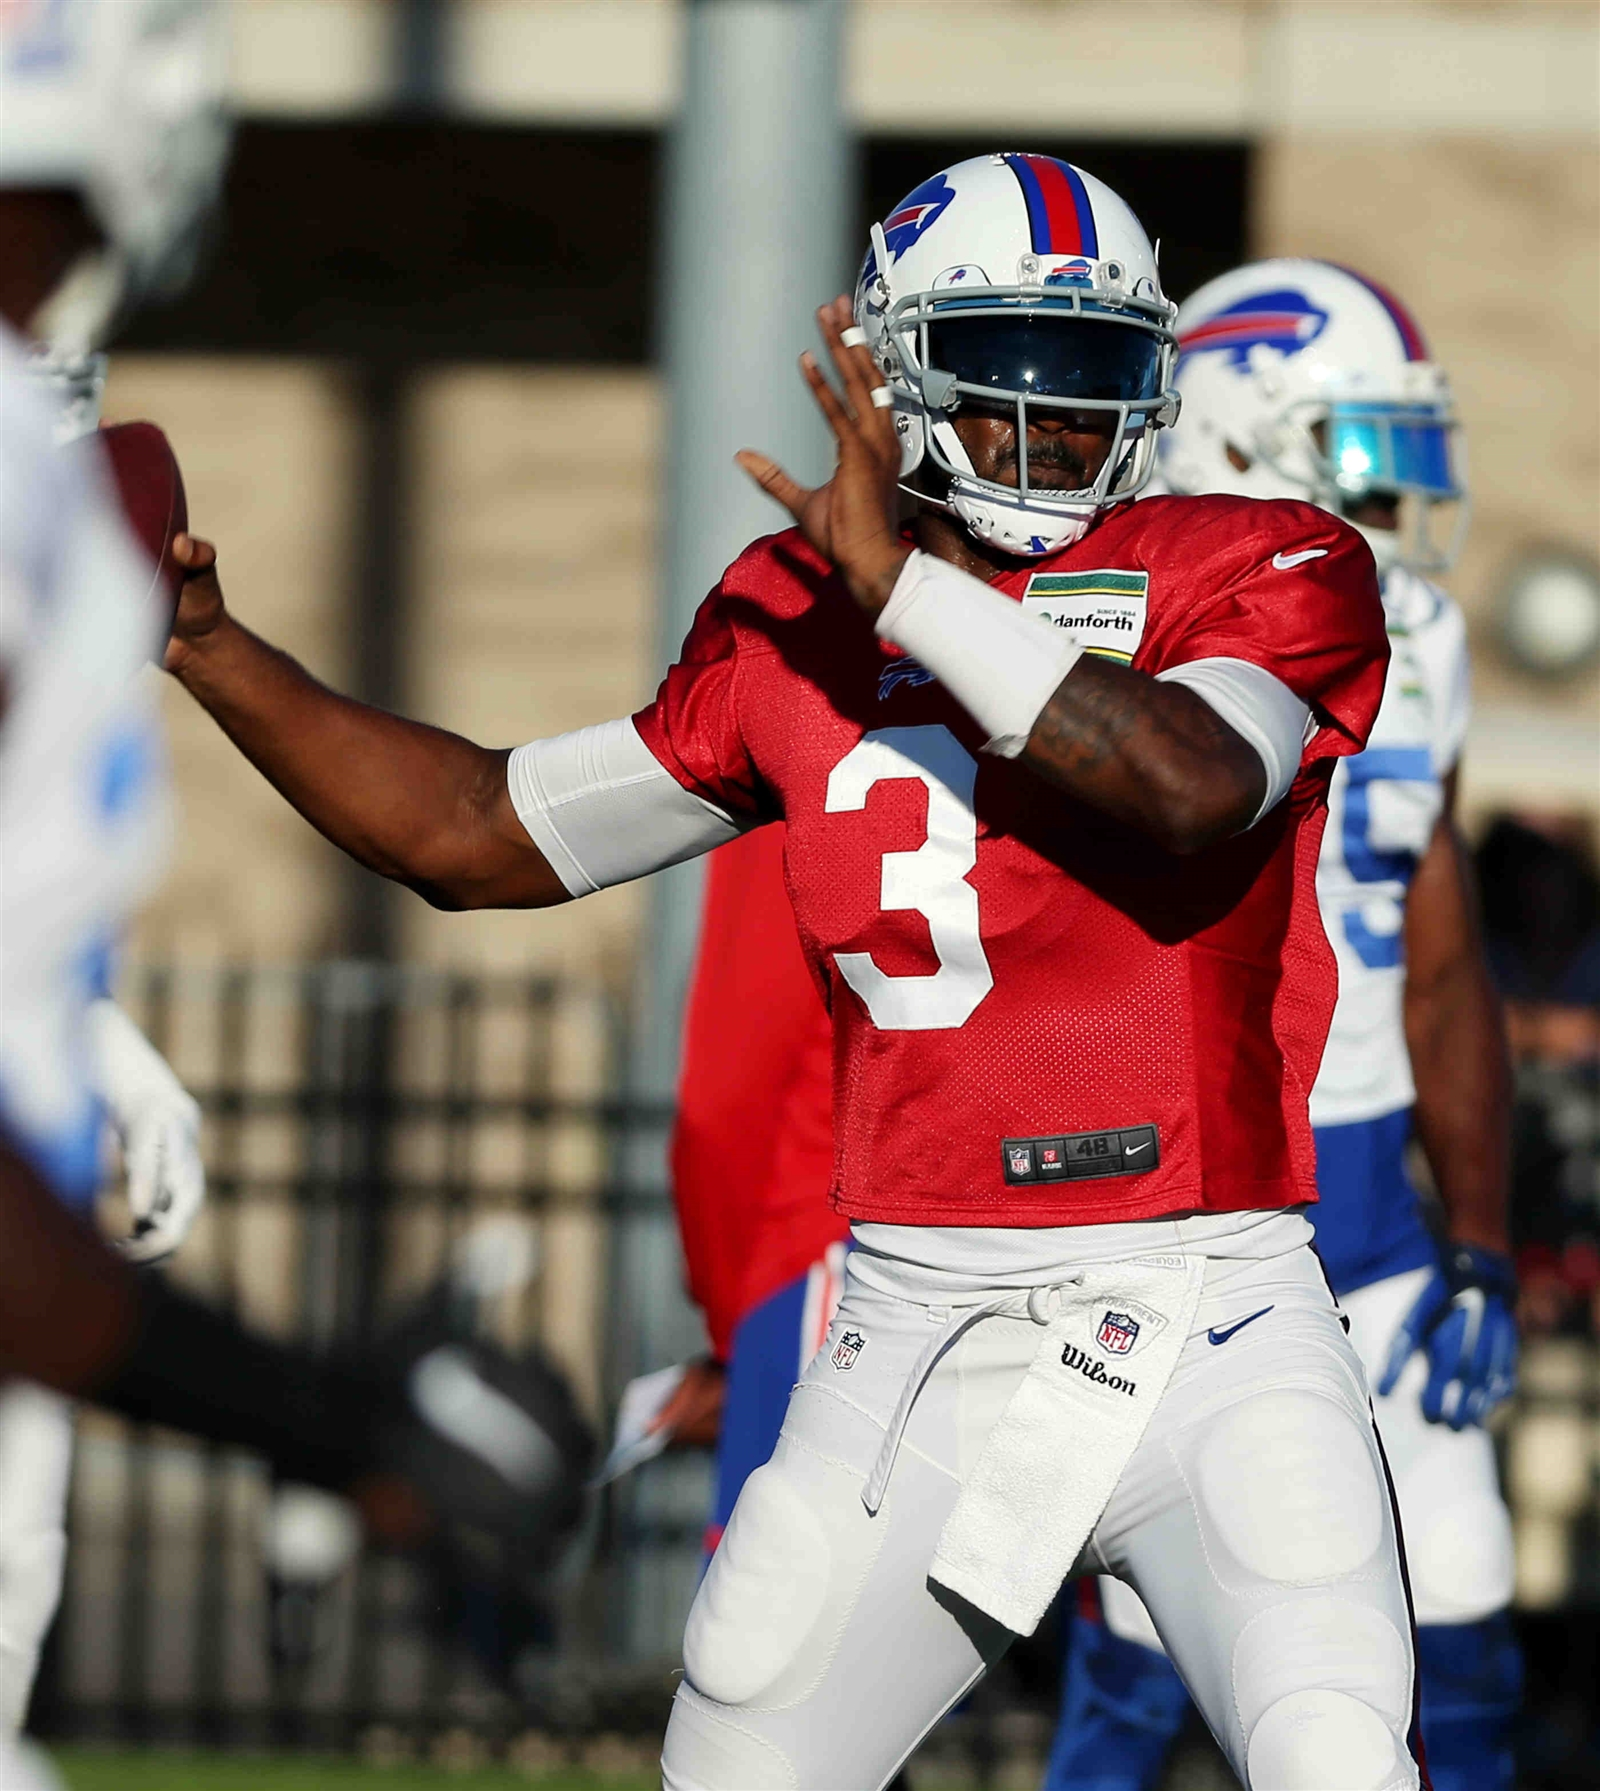 Buffalo Bills quarterback EJ Manuel (3) warms up before Saturday's scrimmage at St. John Fisher College in Pittsford, N.Y.